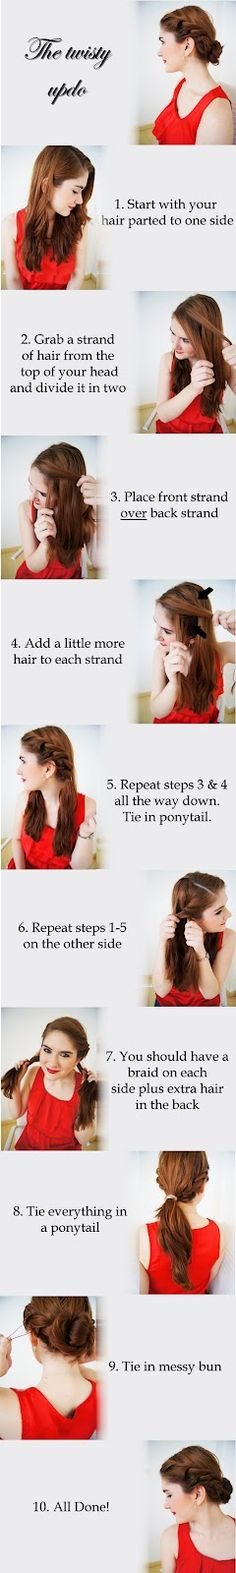 must try! looks so easy..